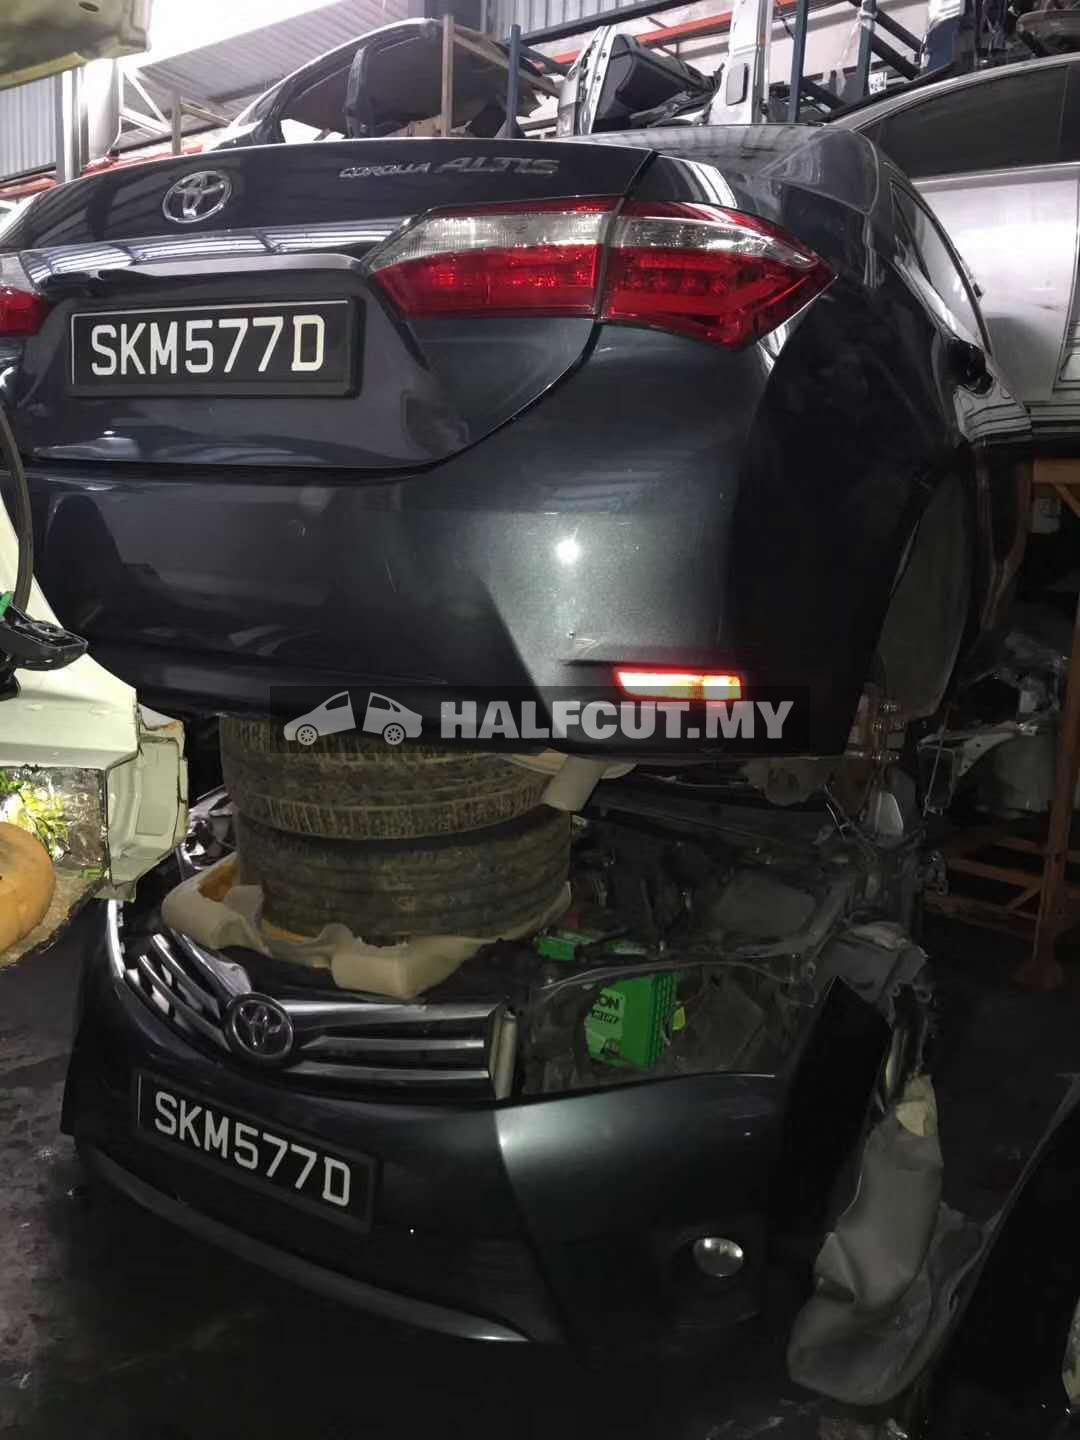 TOYOTA ALTIS 172 1.6CC 1ZR FRONT CUT AND REAR CUT